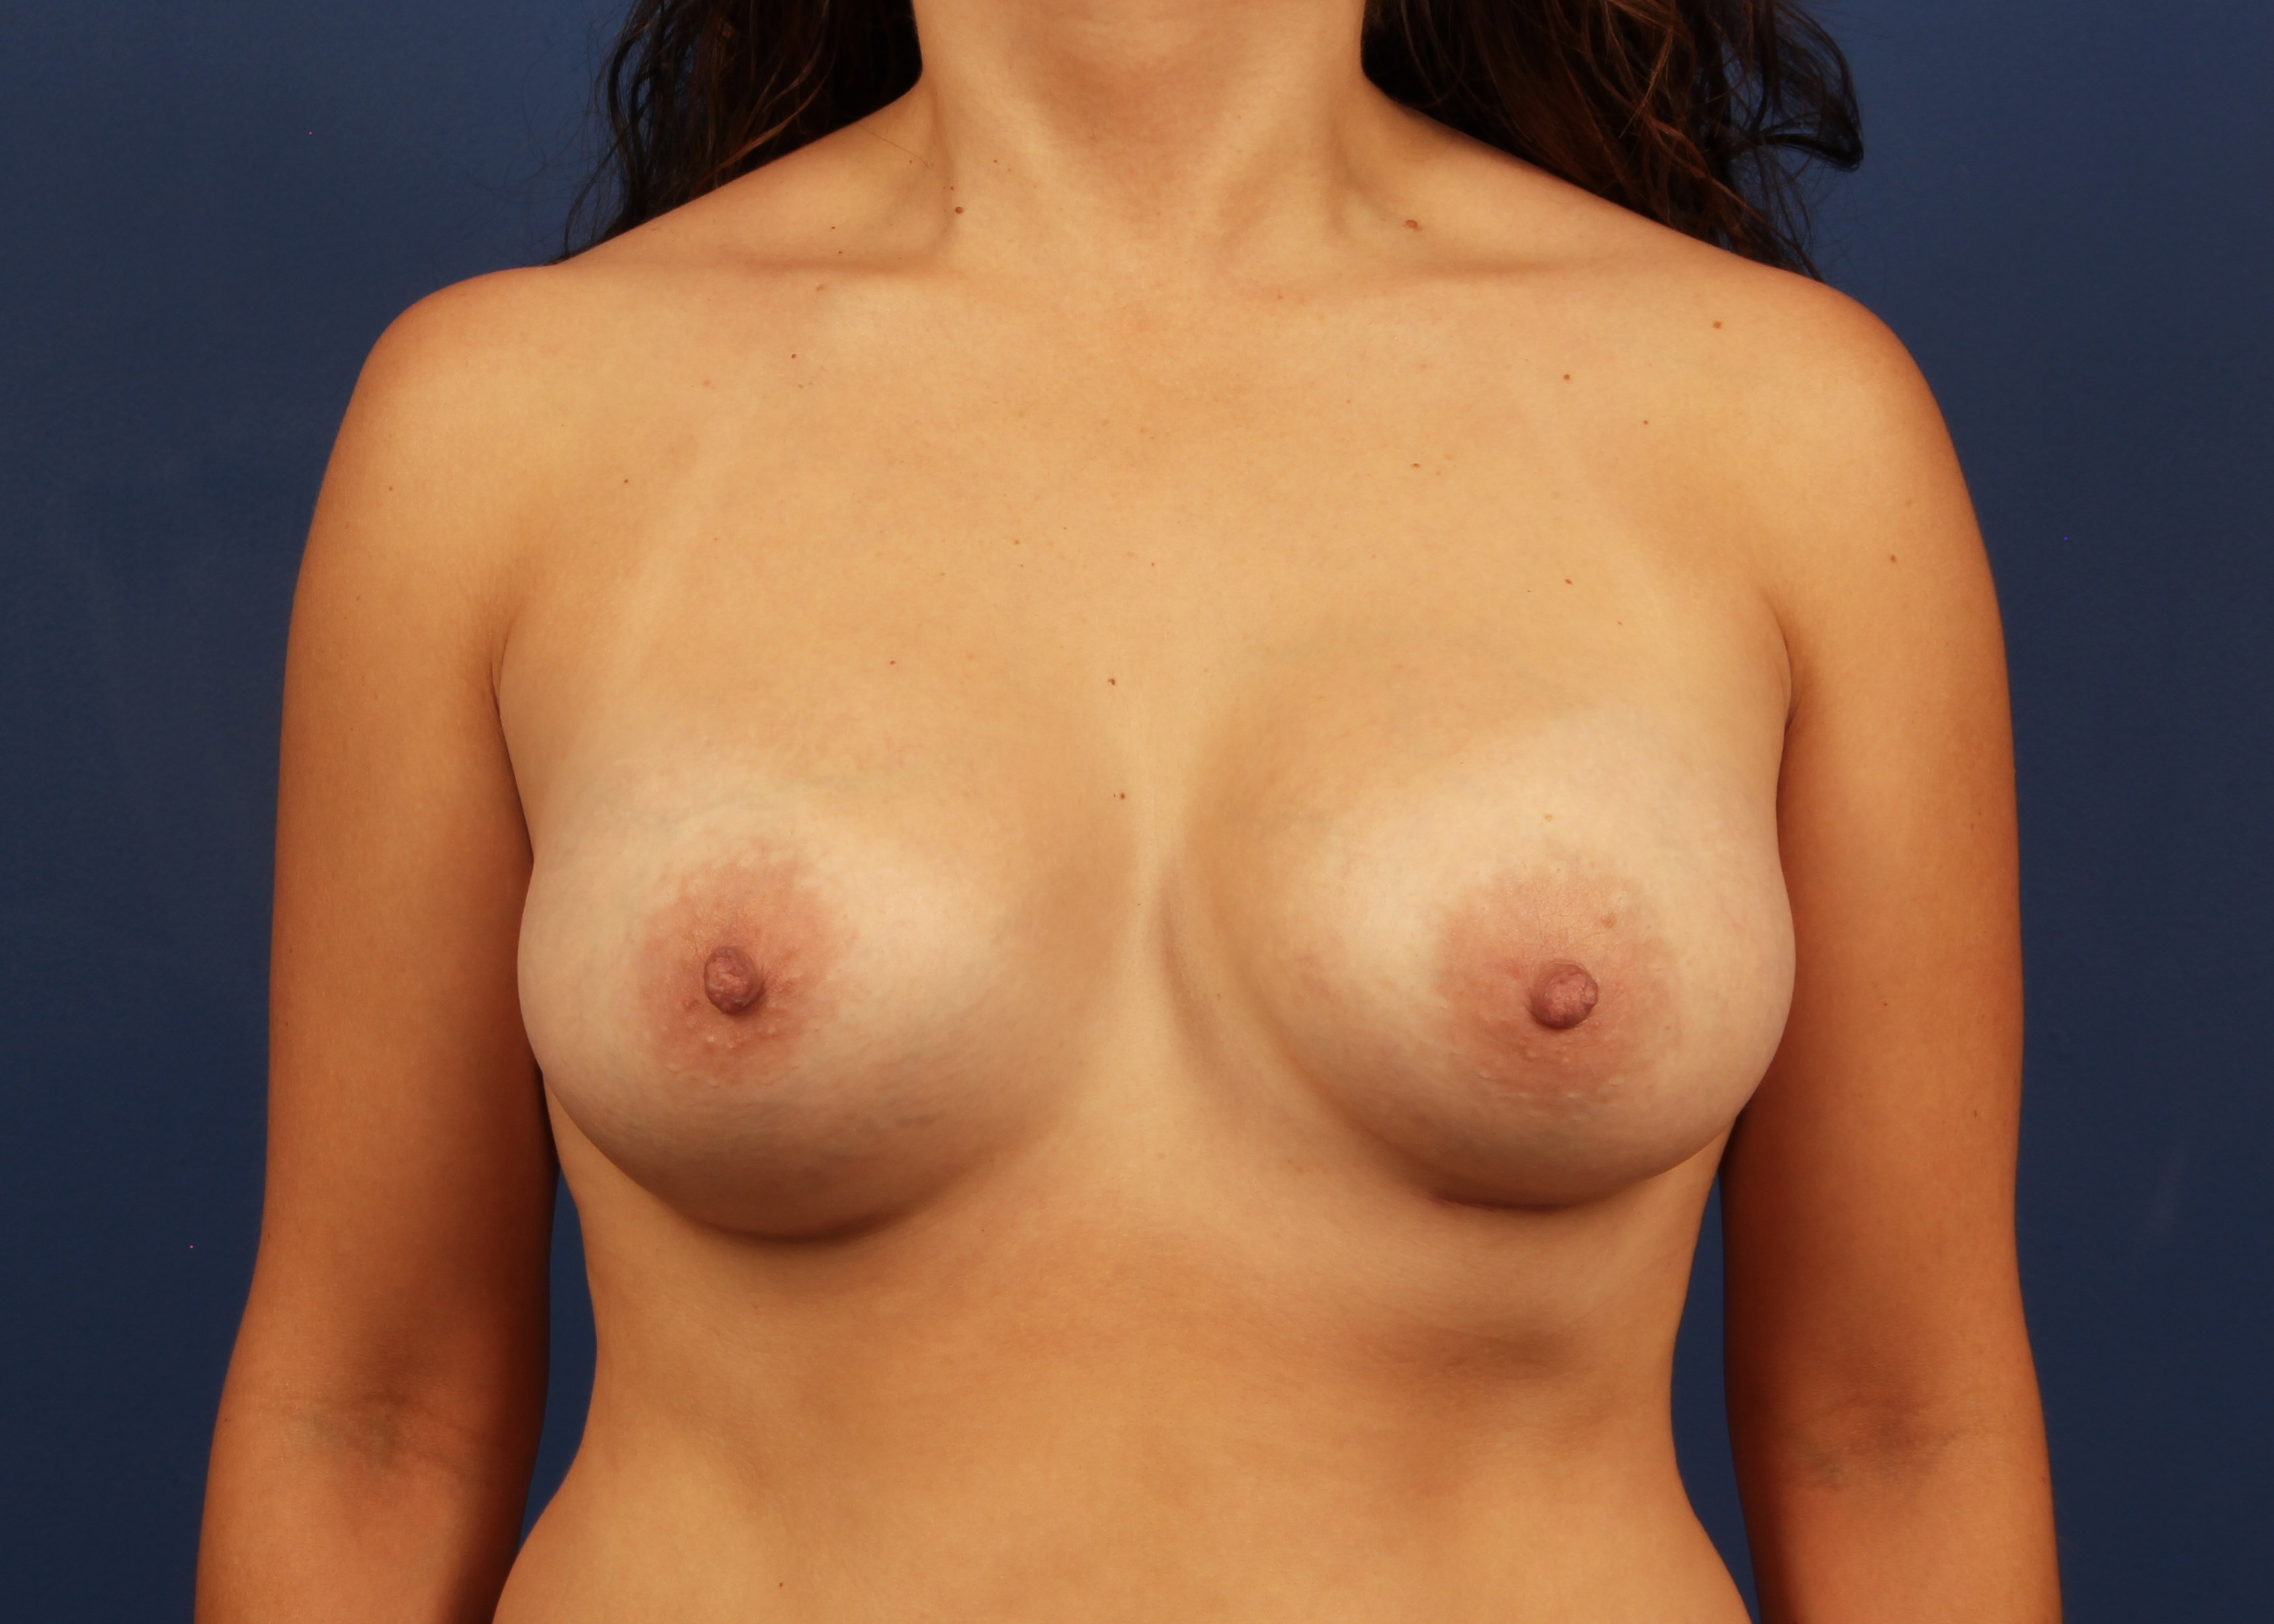 after breast implants - Dr Mata